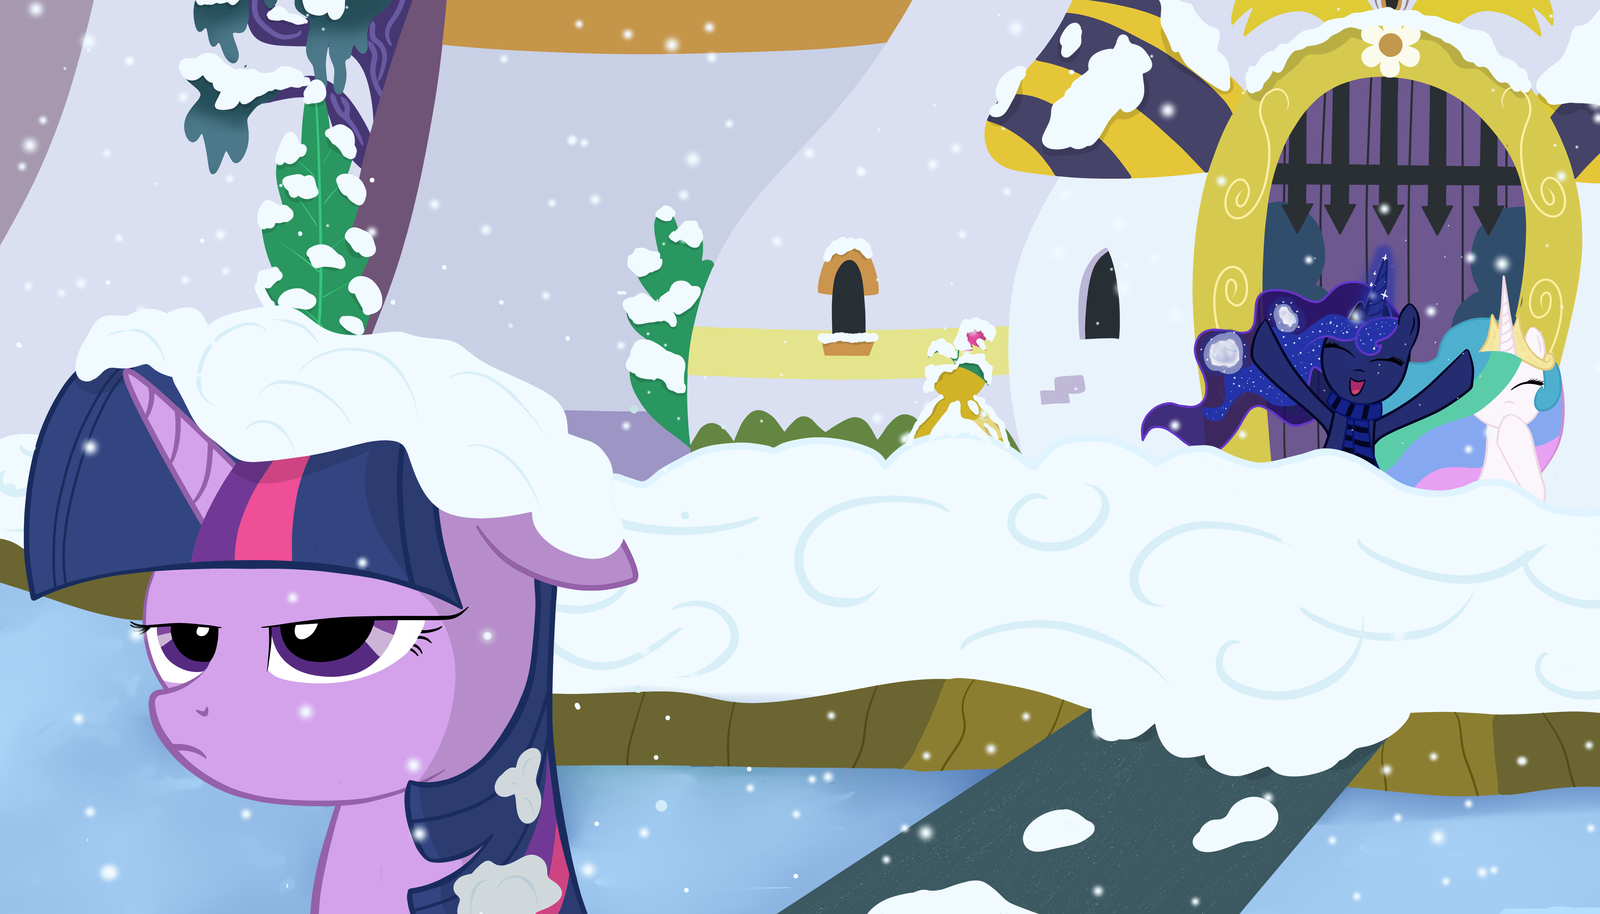 Winter Holidays by Cpt-Firespit